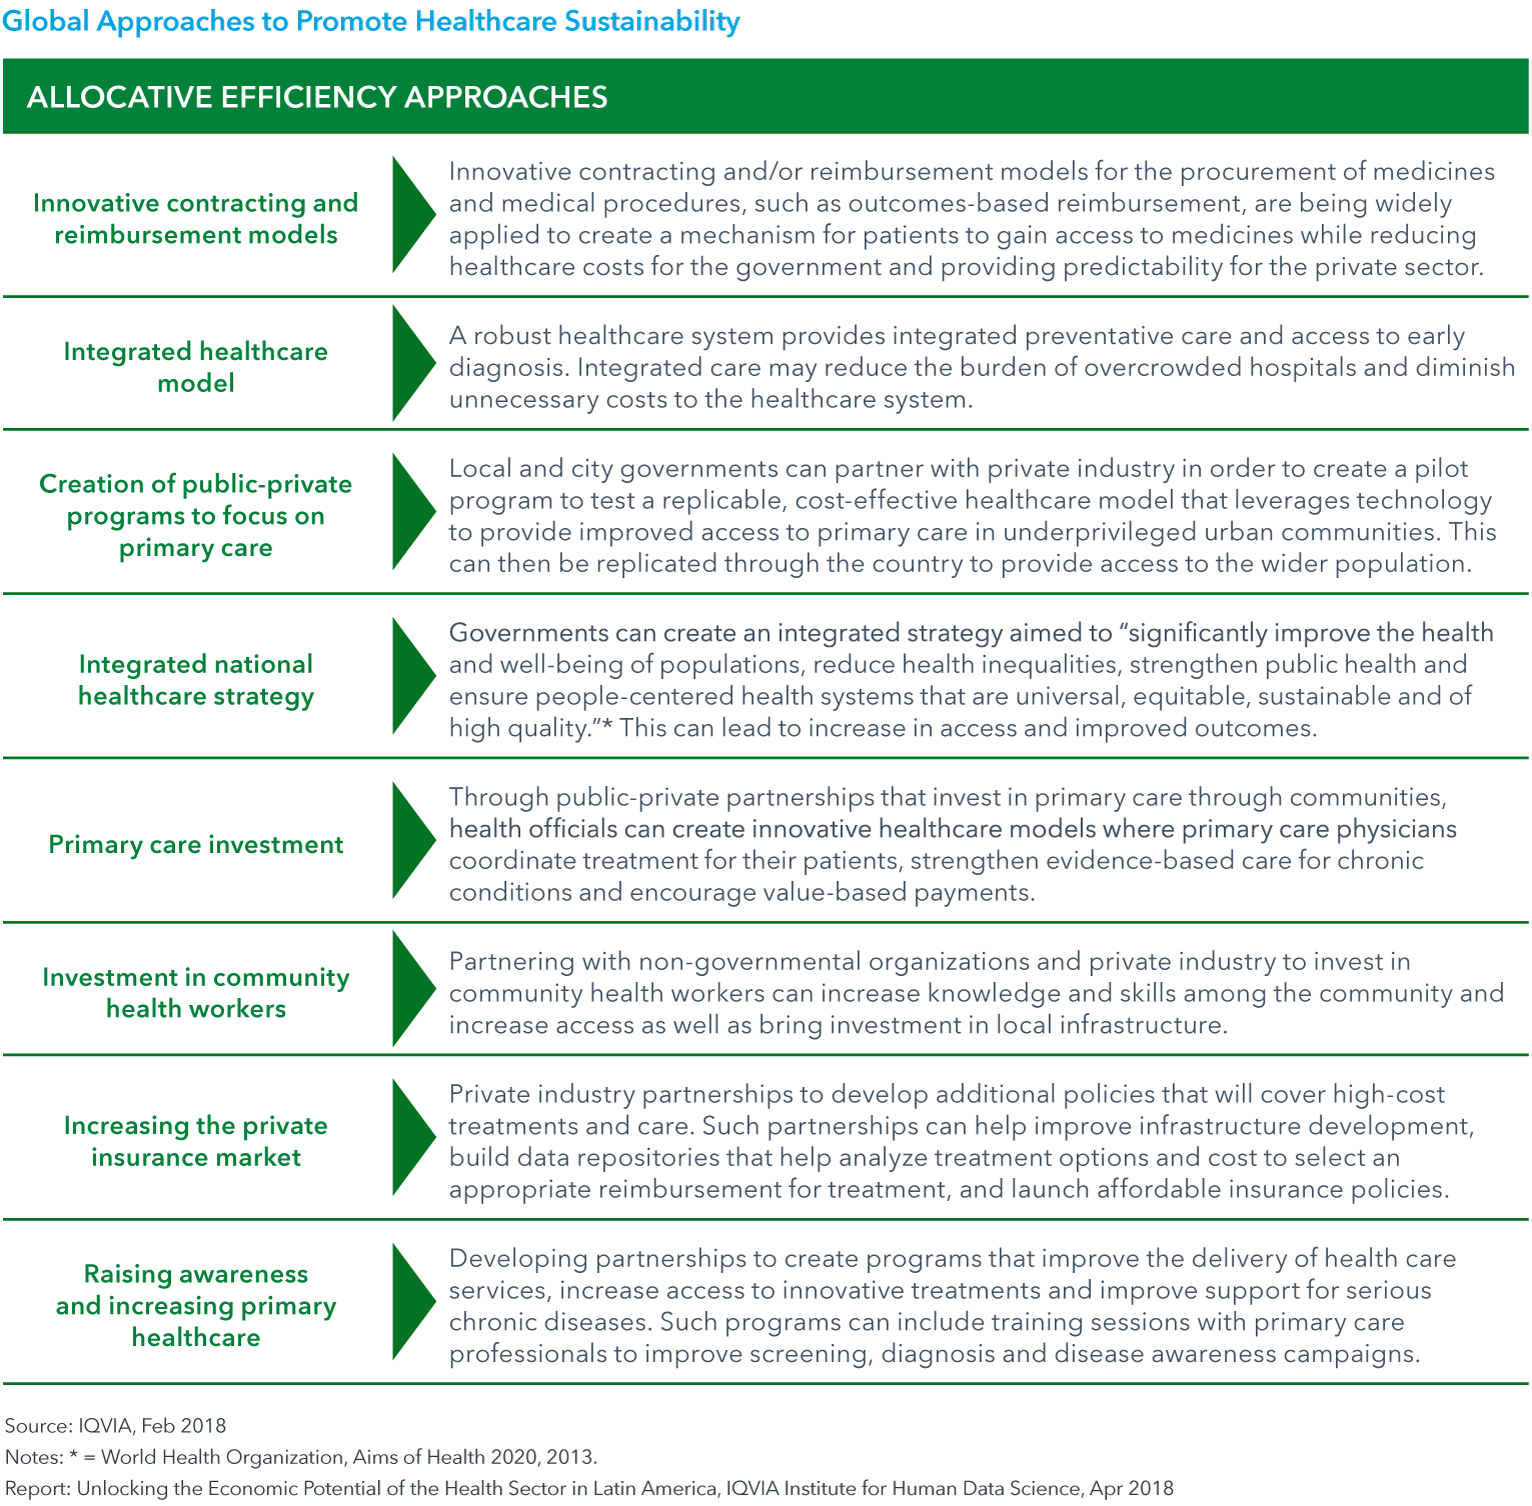 Chart 5a: Global Approaches to Promote Healthcare Sustainability